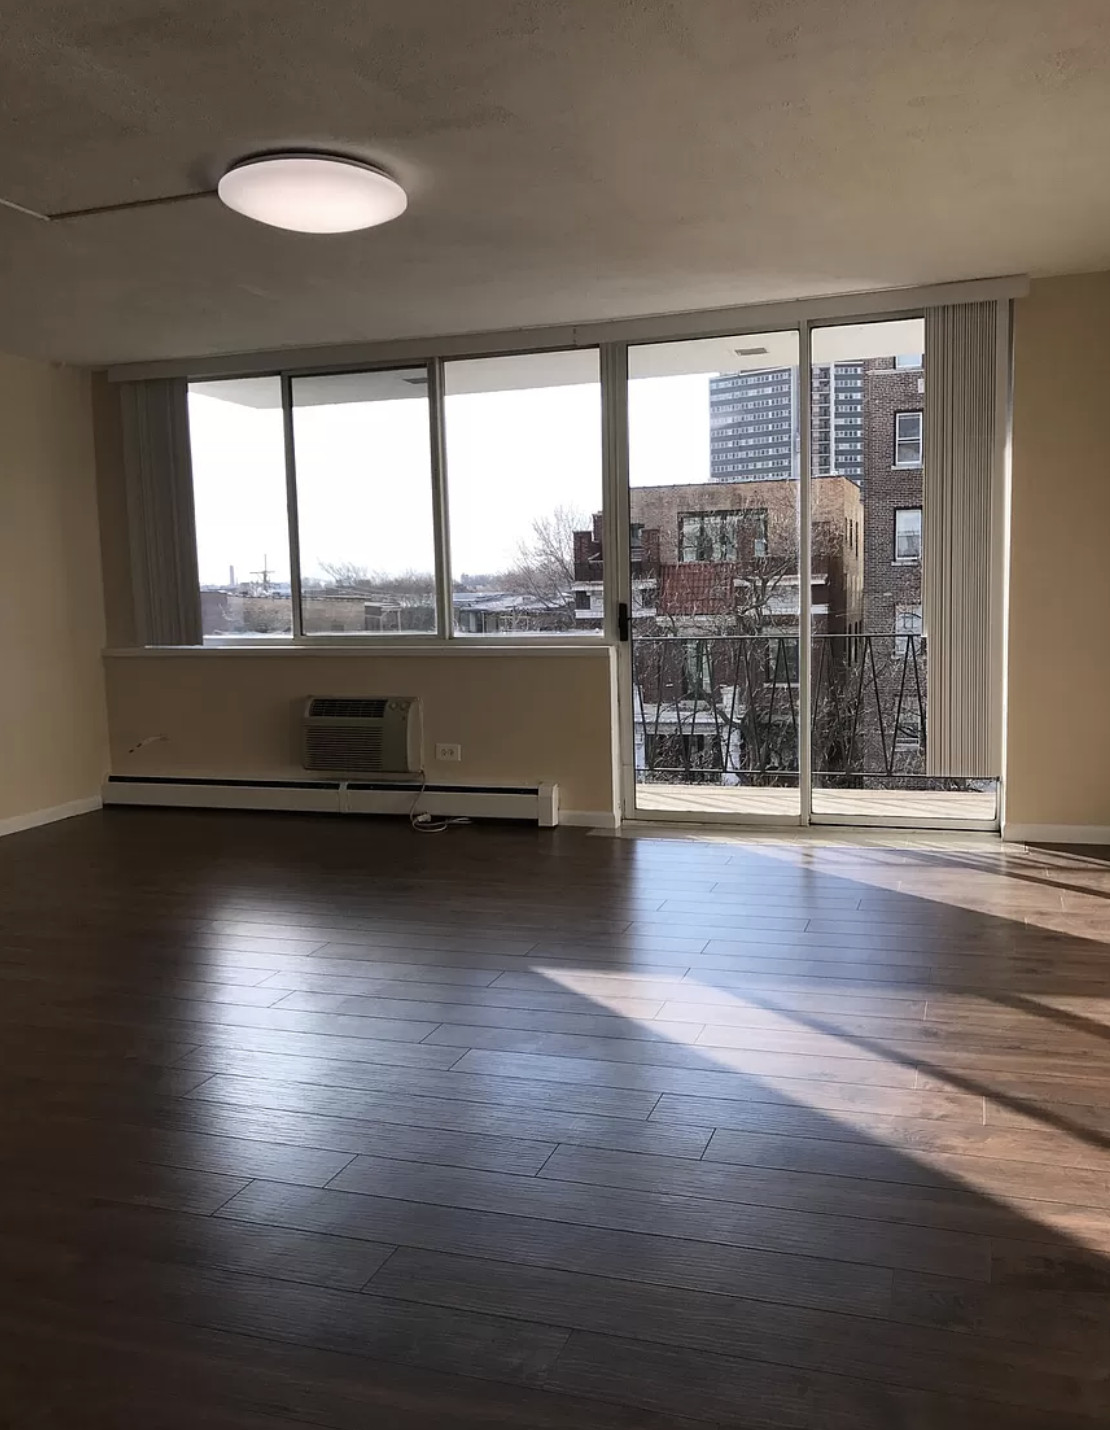 A room with a small balcony, hardwood floors, and a sliding glass door. There is natural light and a kitchen out of frame.